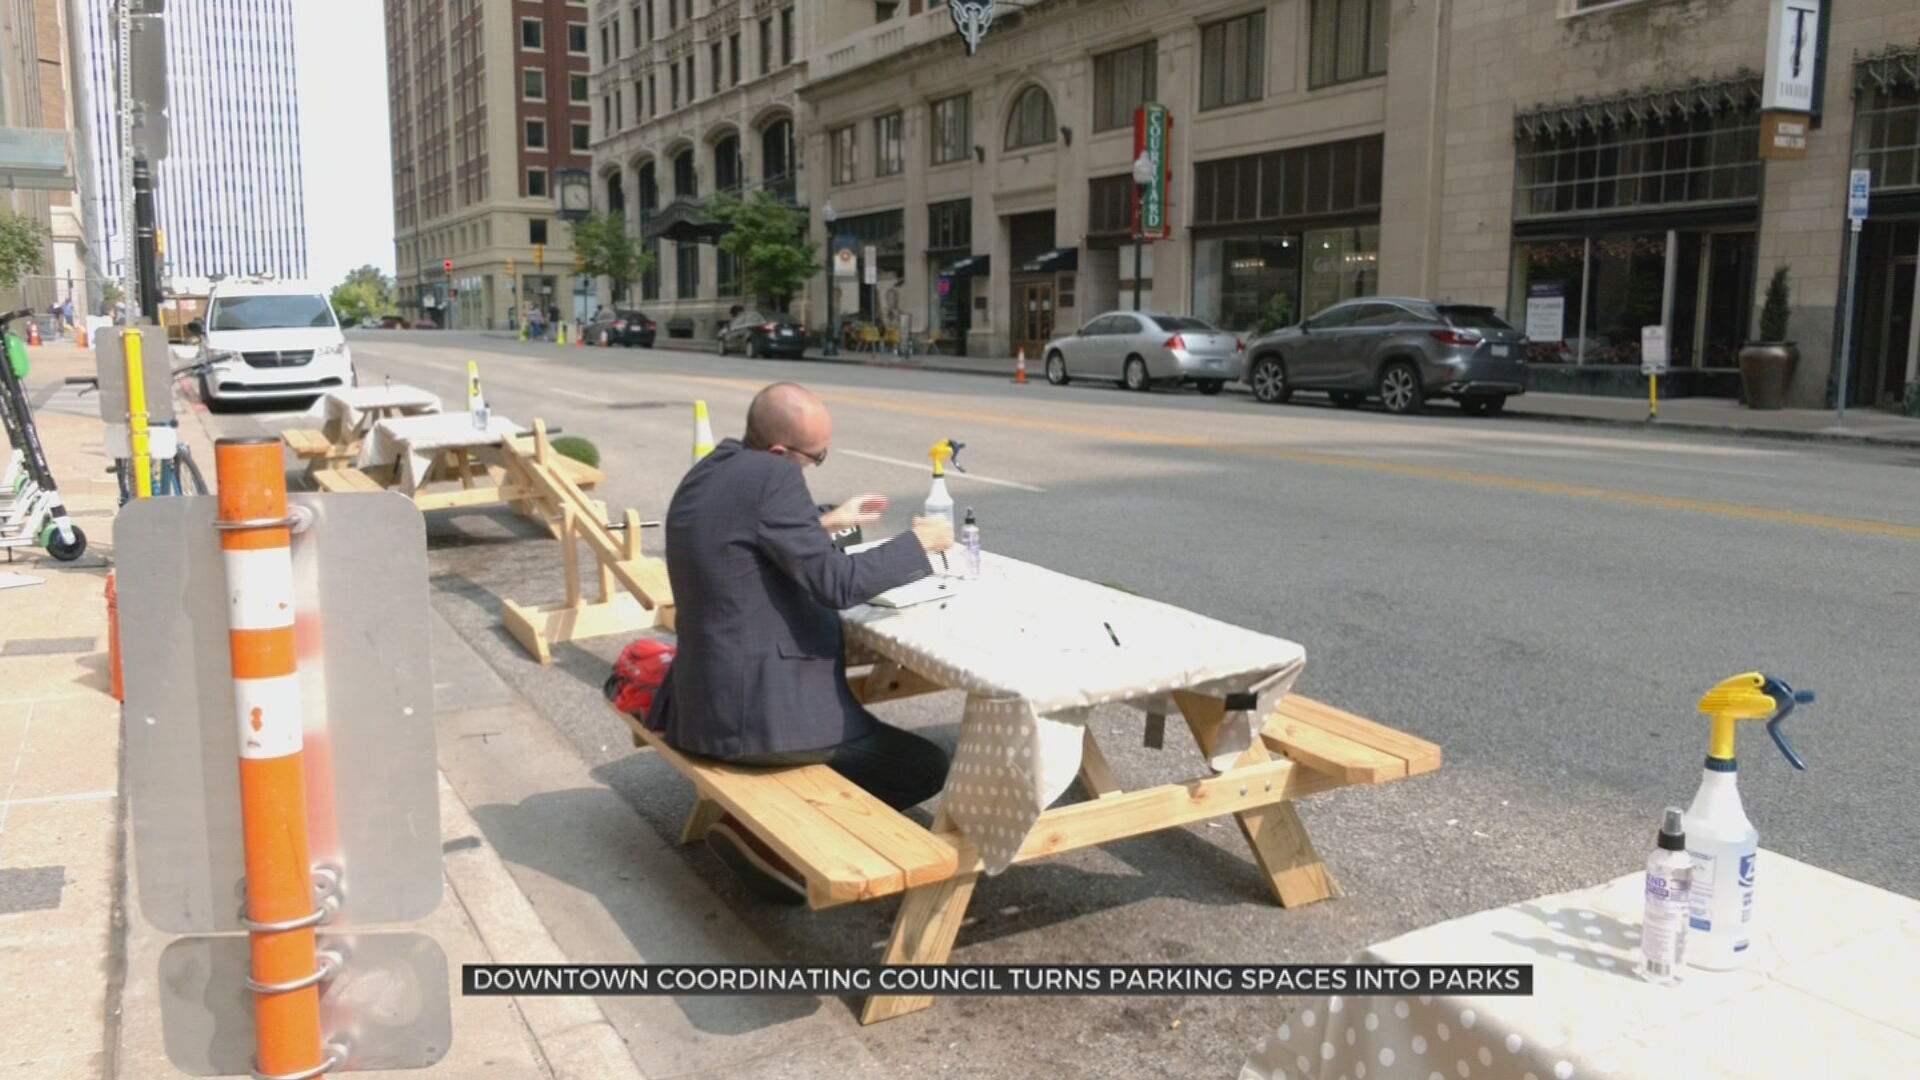 Downtown Coordinating Council Turns Parking Spots Into Parks